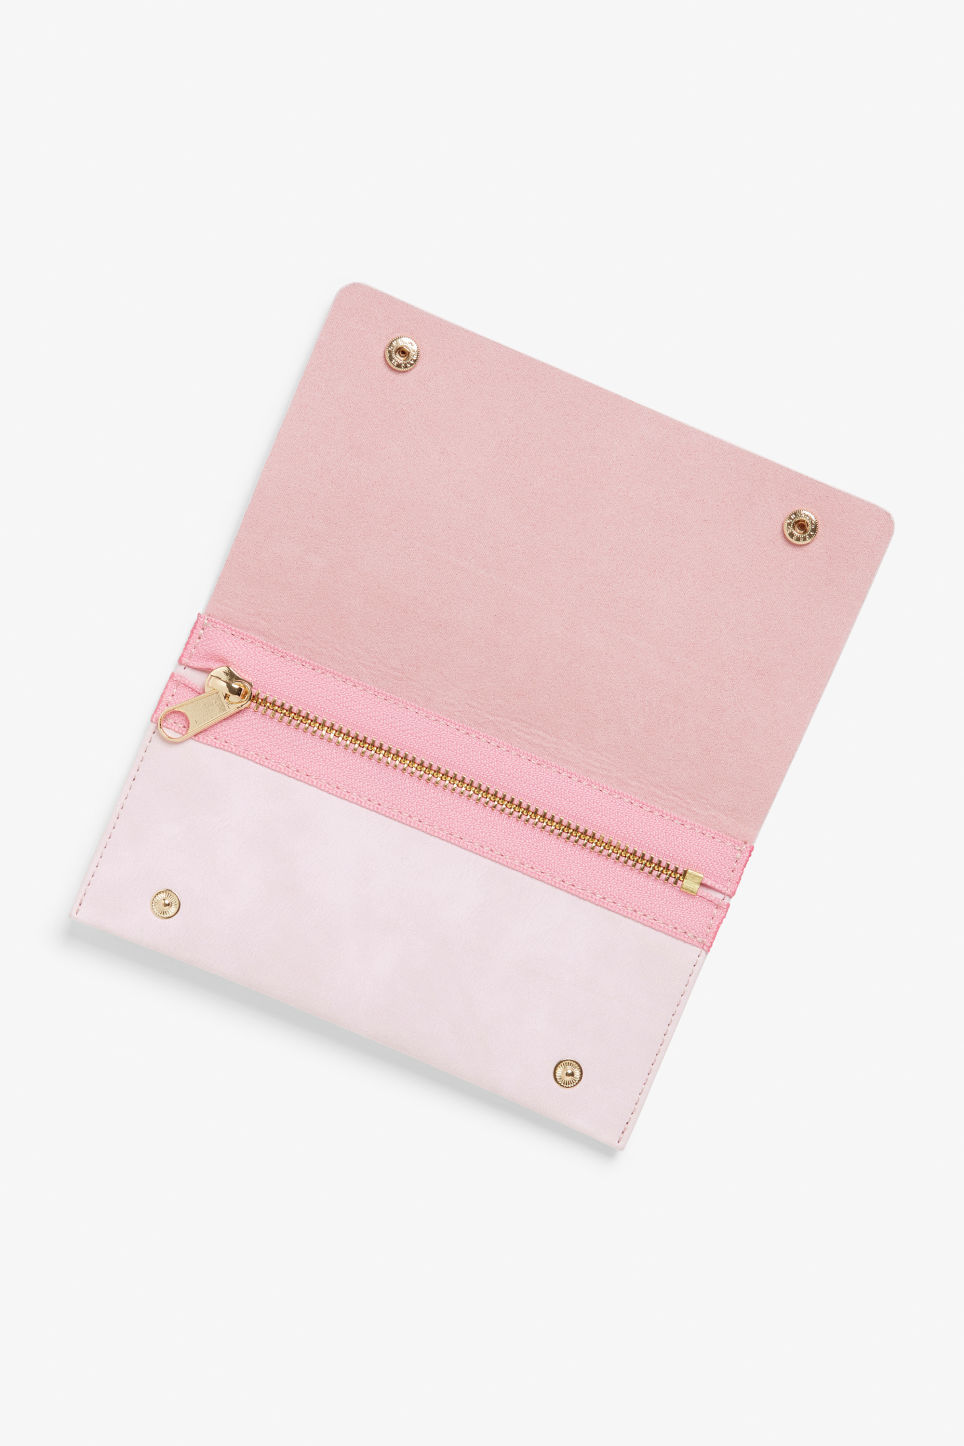 Detailed image of Monki wallet with belt loop in pink